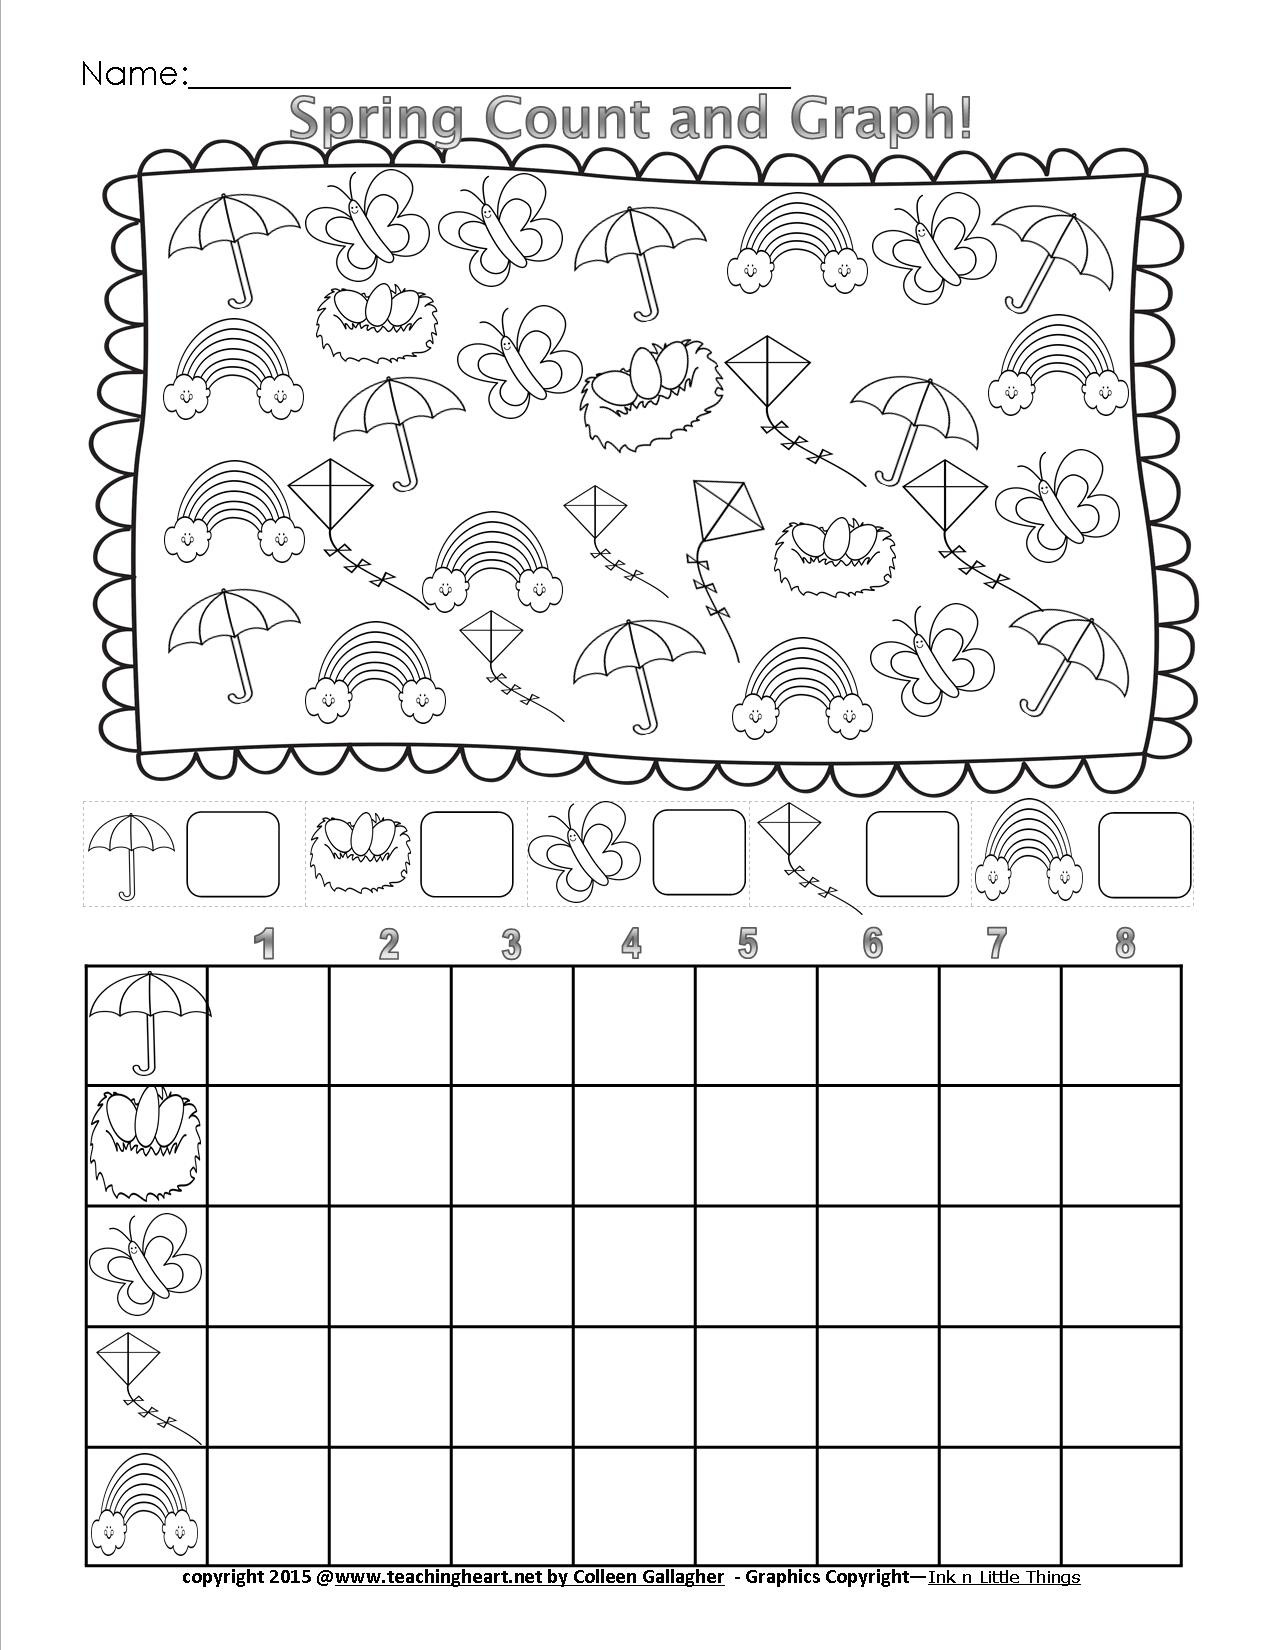 Graphing Worksheets for First Grade Spring Count and Graph – Free – Teaching Heart Blog